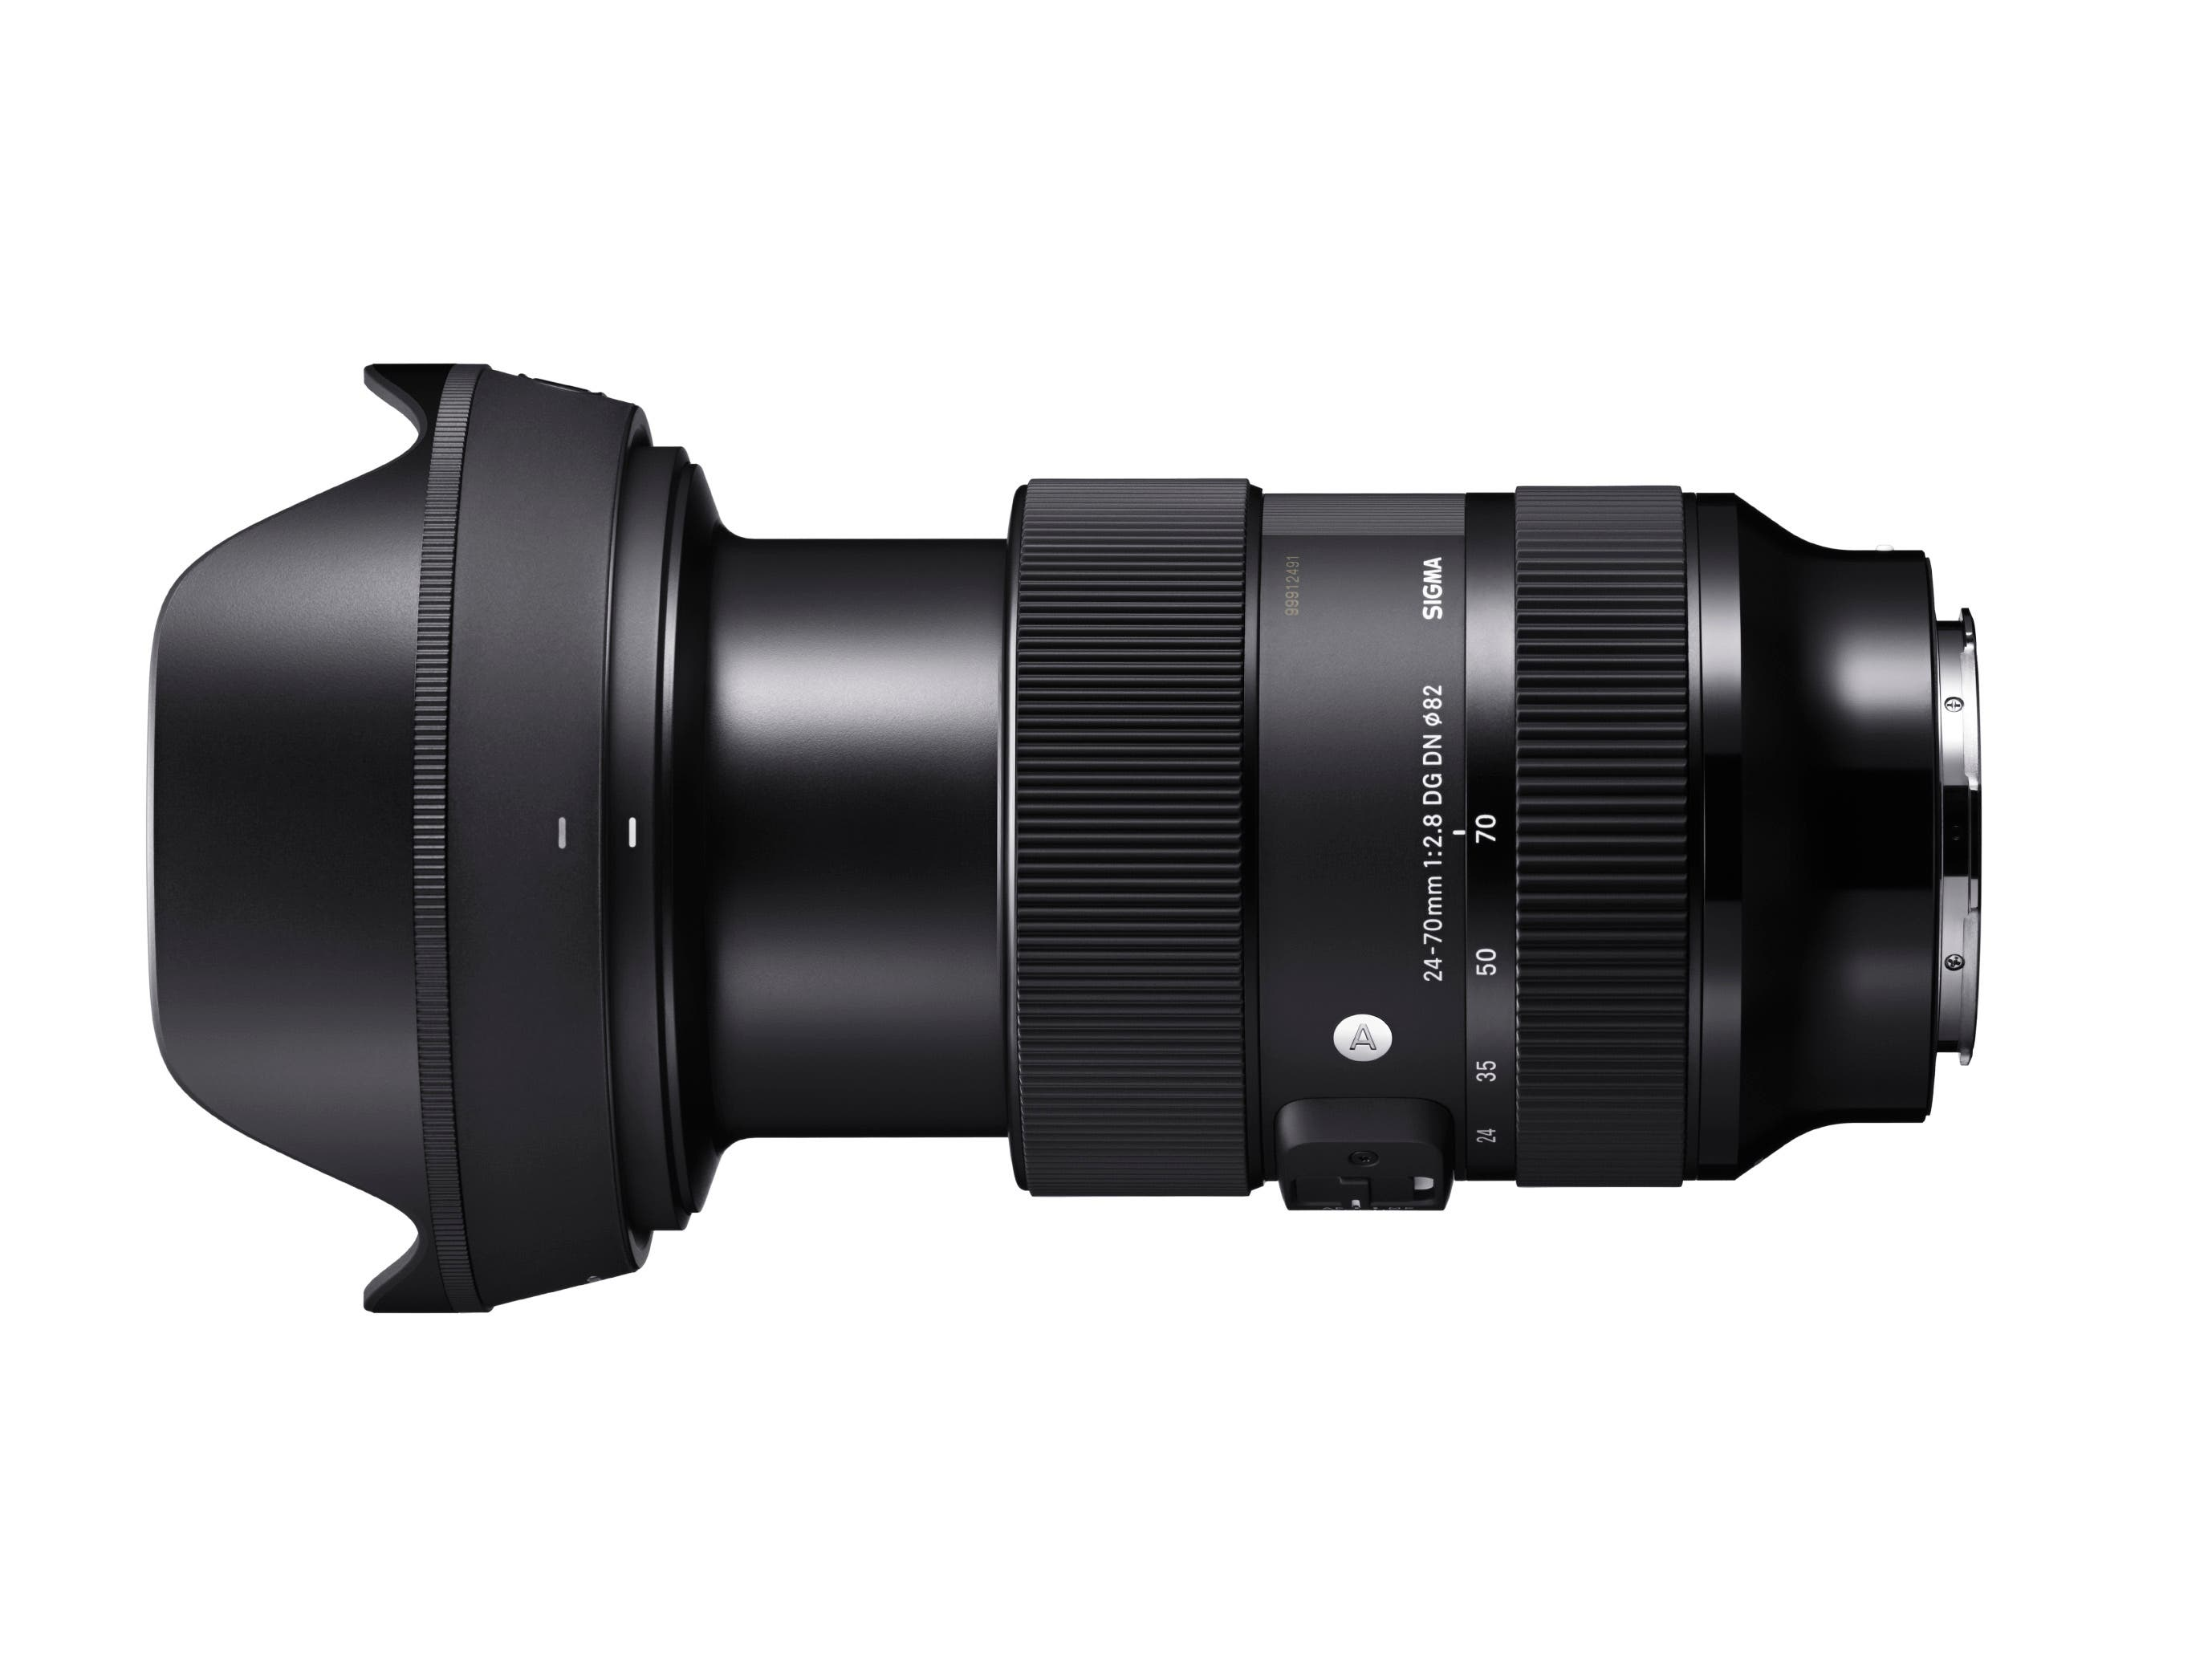 The New Sigma 24-70mm F2.8 DG DN Art Will Cost $1,099 in December